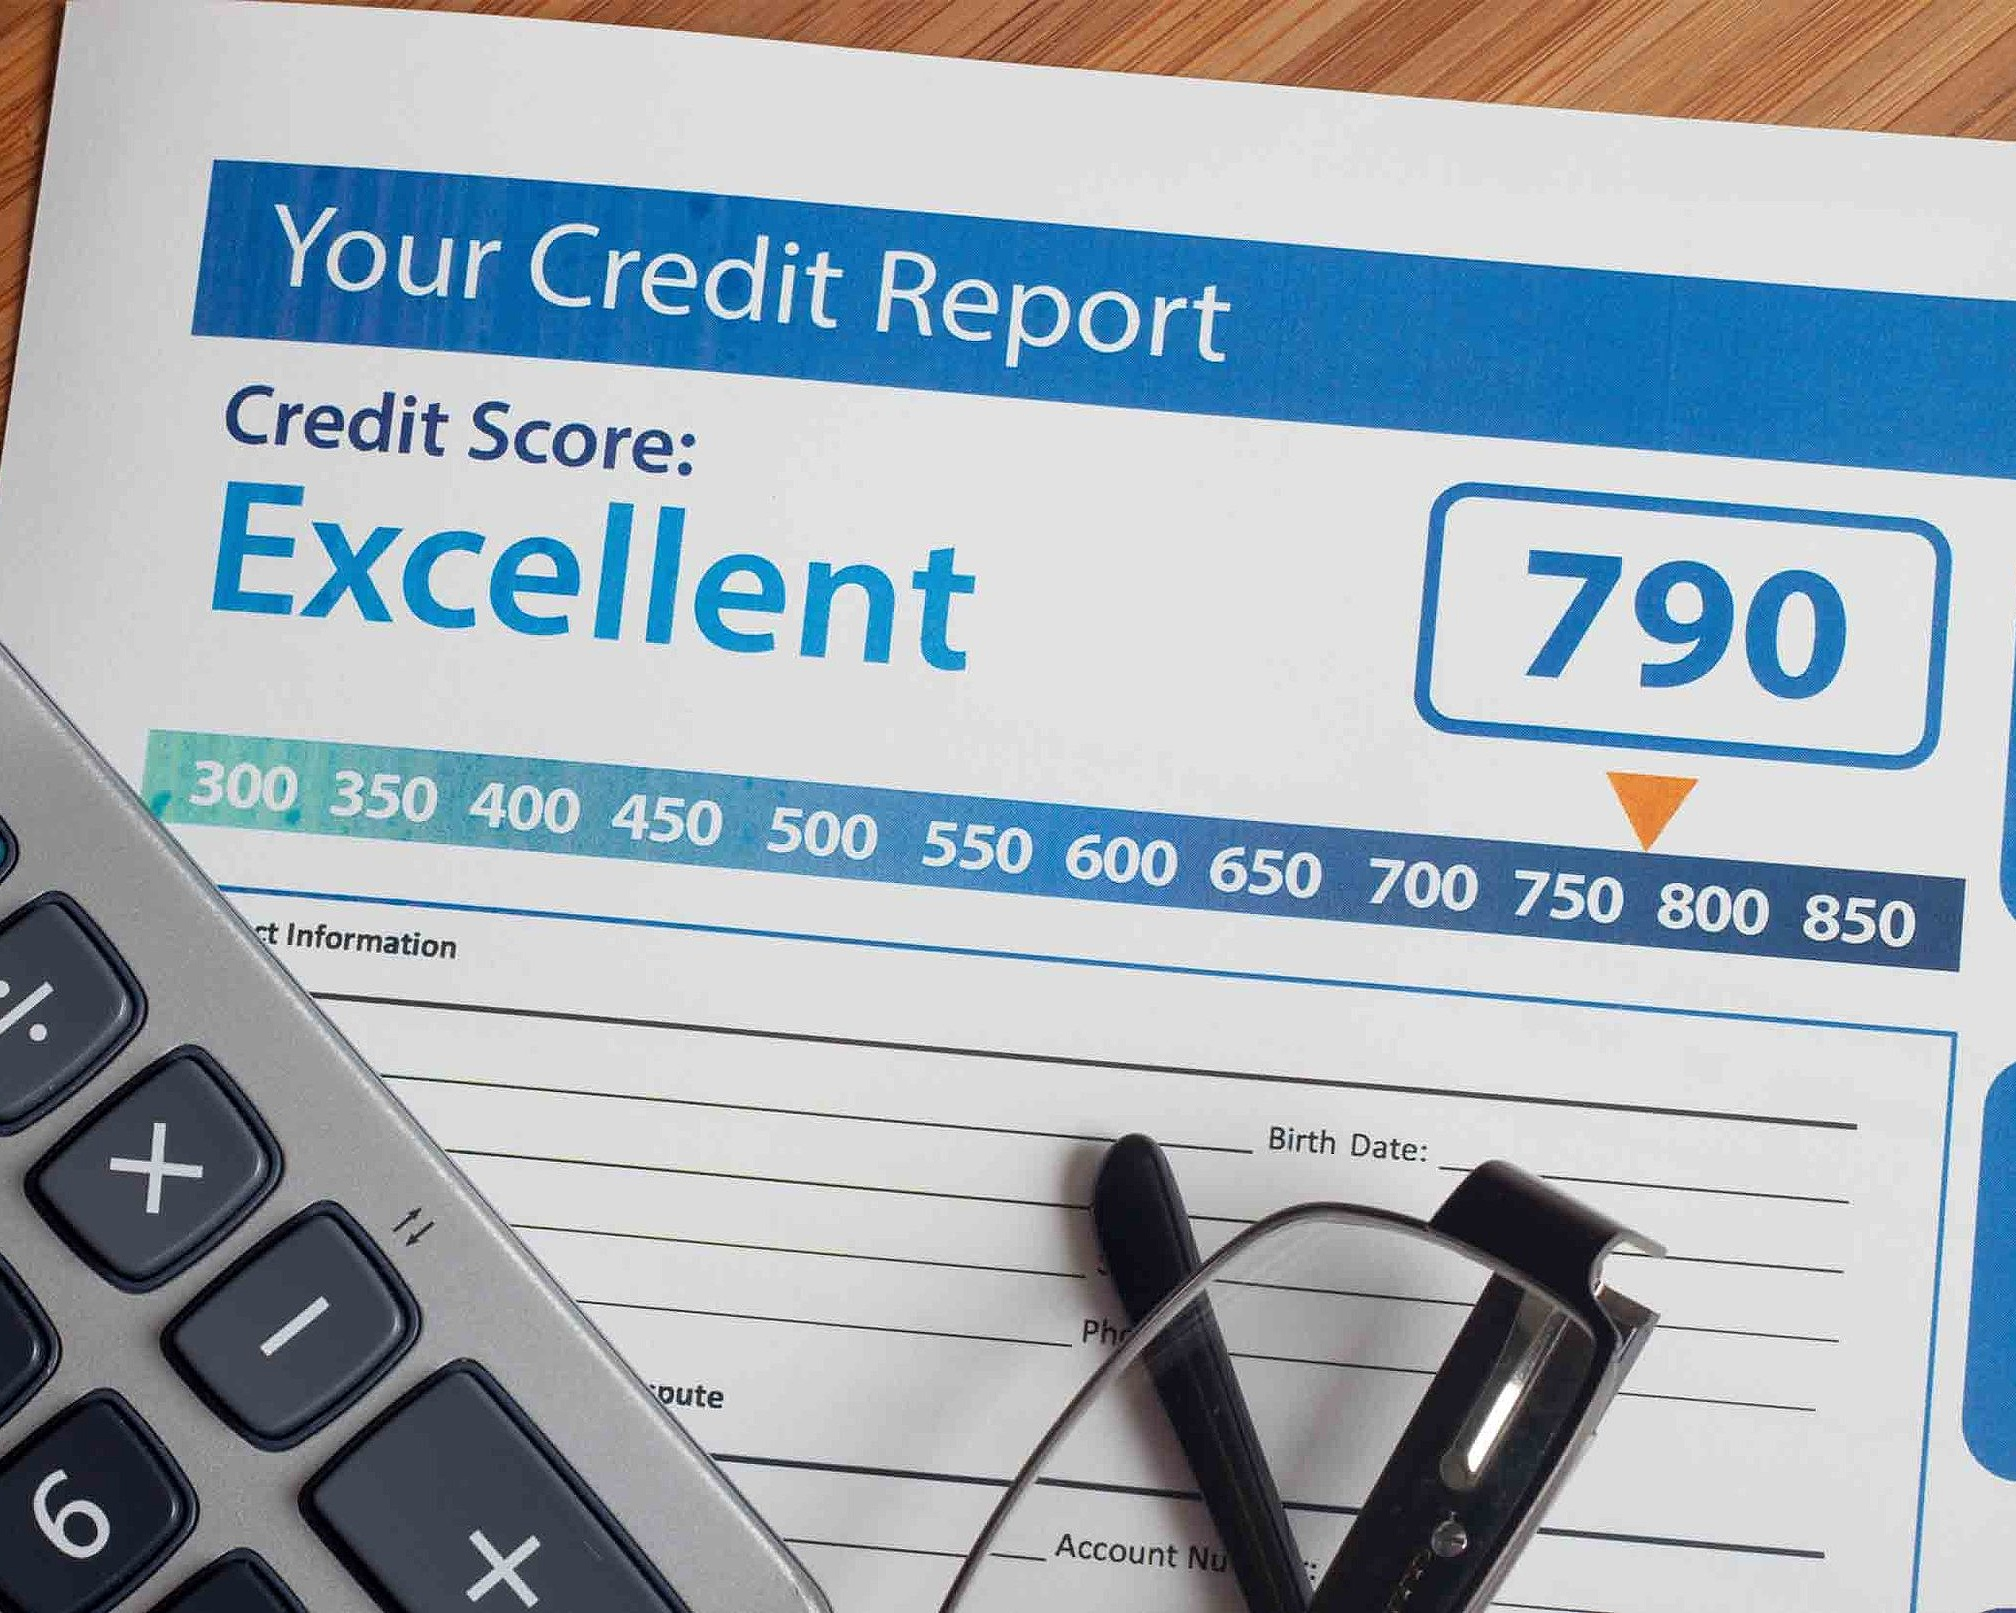 Boost your credit score in 90 days - Our provider matches credit partners who have stellar credit with people who need a boost in their credit profile.